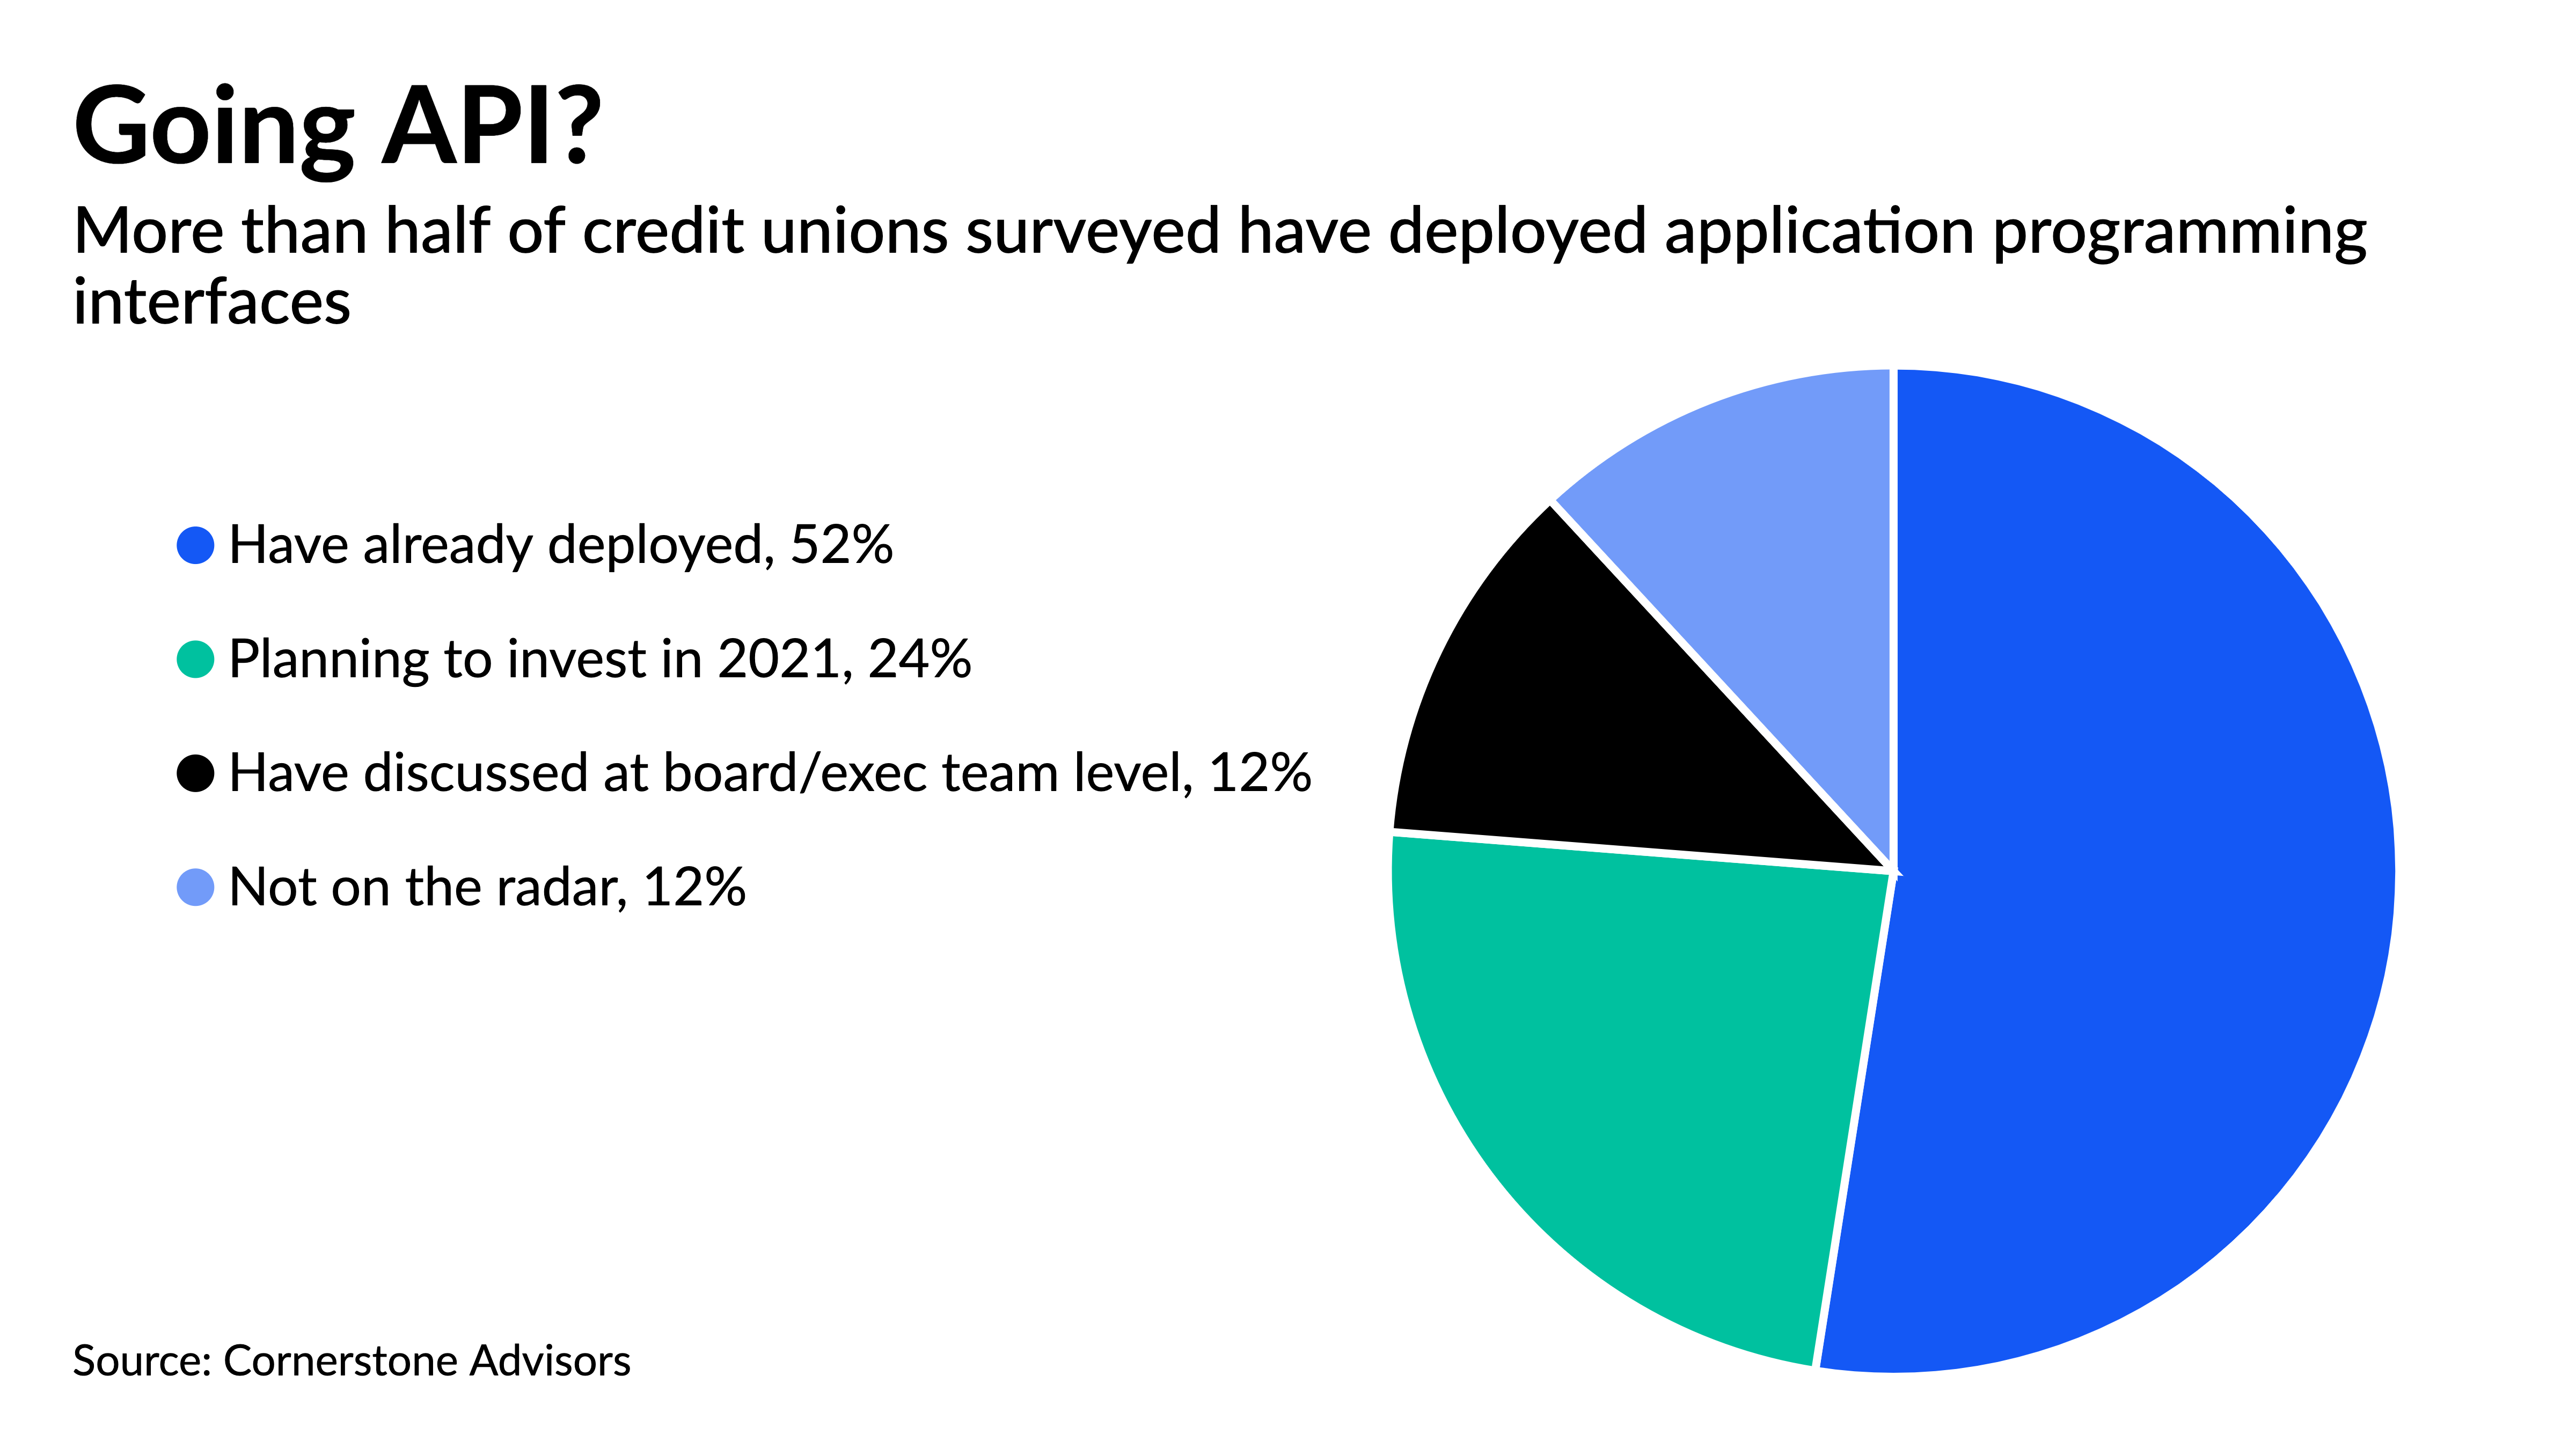 americanbanker.com - Frank Gargano - Two fintechs give credit unions banking-as-a-service capability